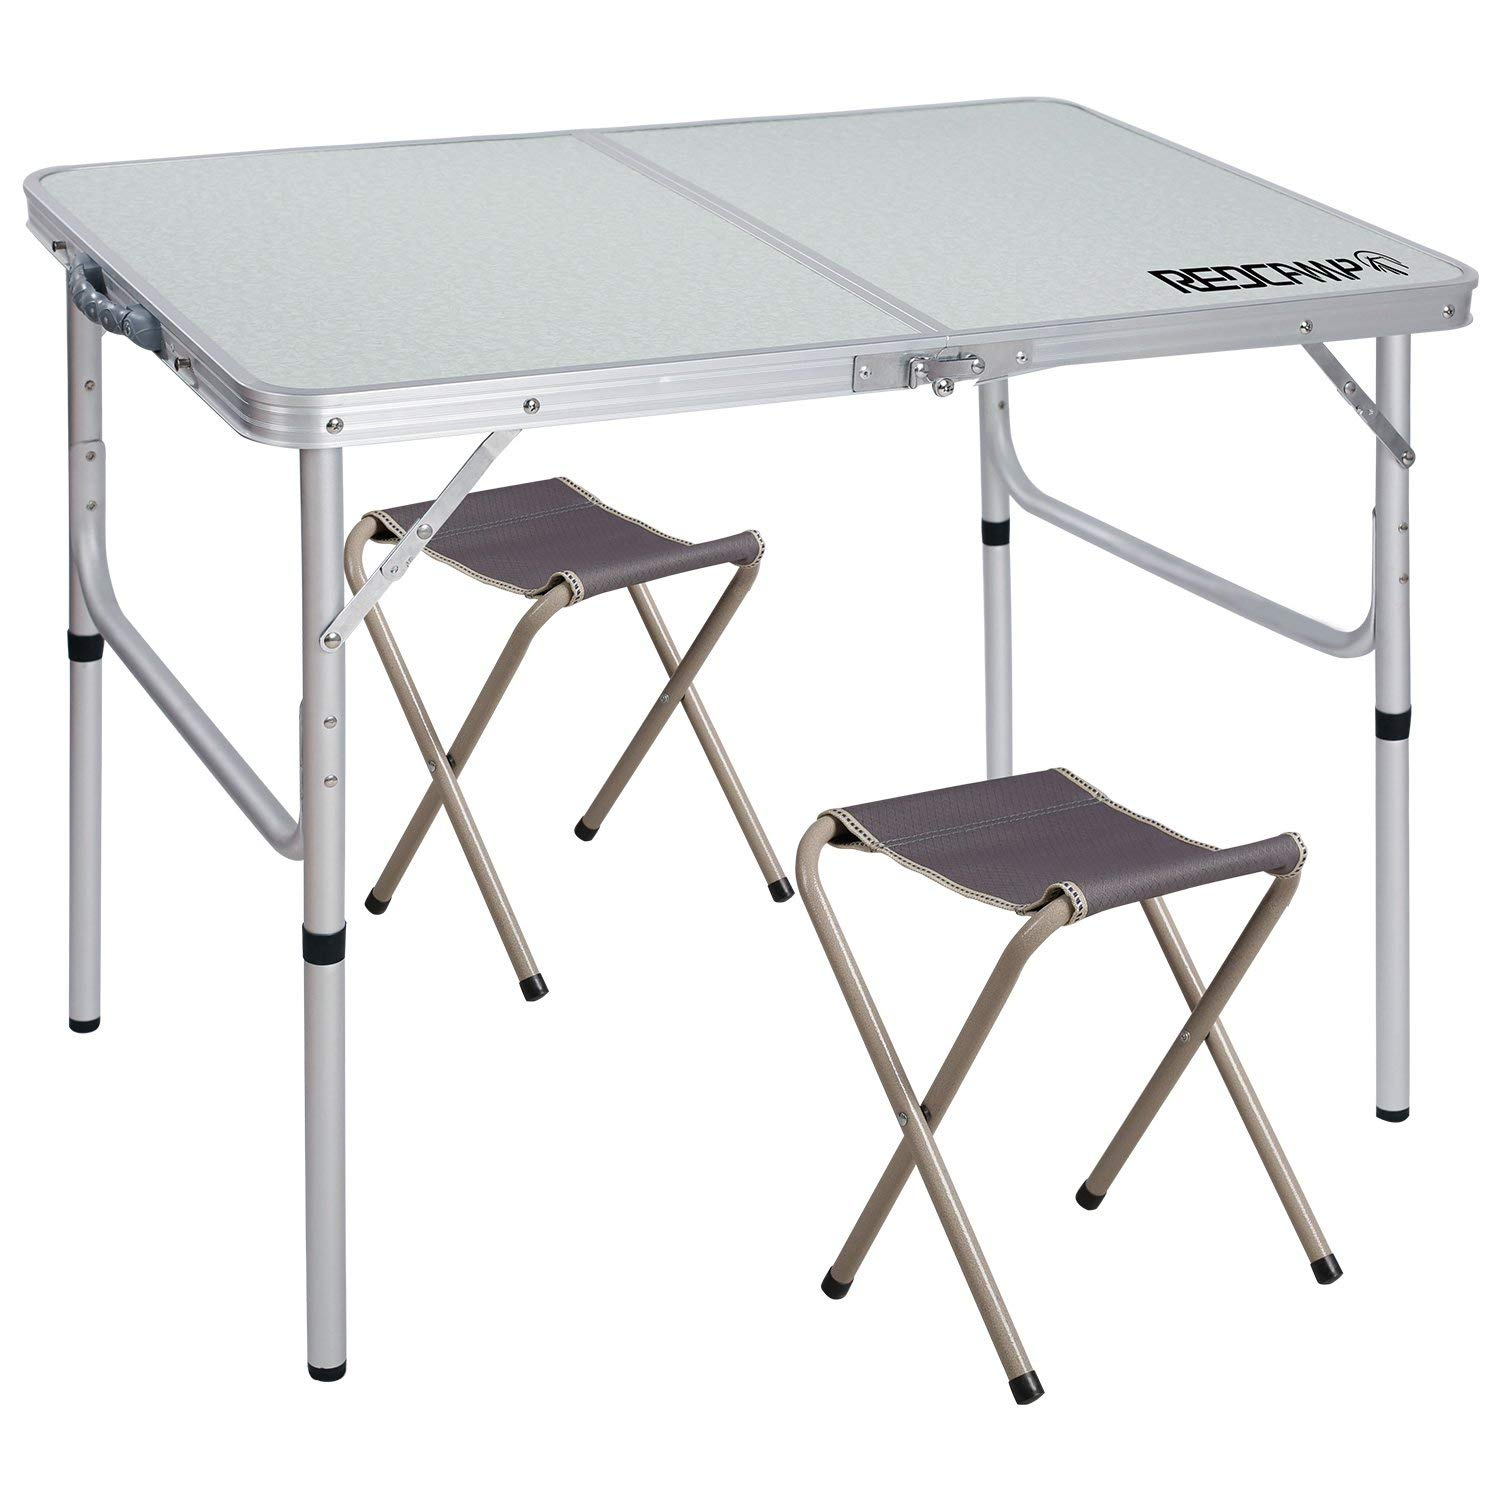 Marvelous Redcamp Folding Camping Table Adjustable Portable Picnic Table With 2 Chairs Aluminum White 35 4X23 6X15 27 6 Uwap Interior Chair Design Uwaporg